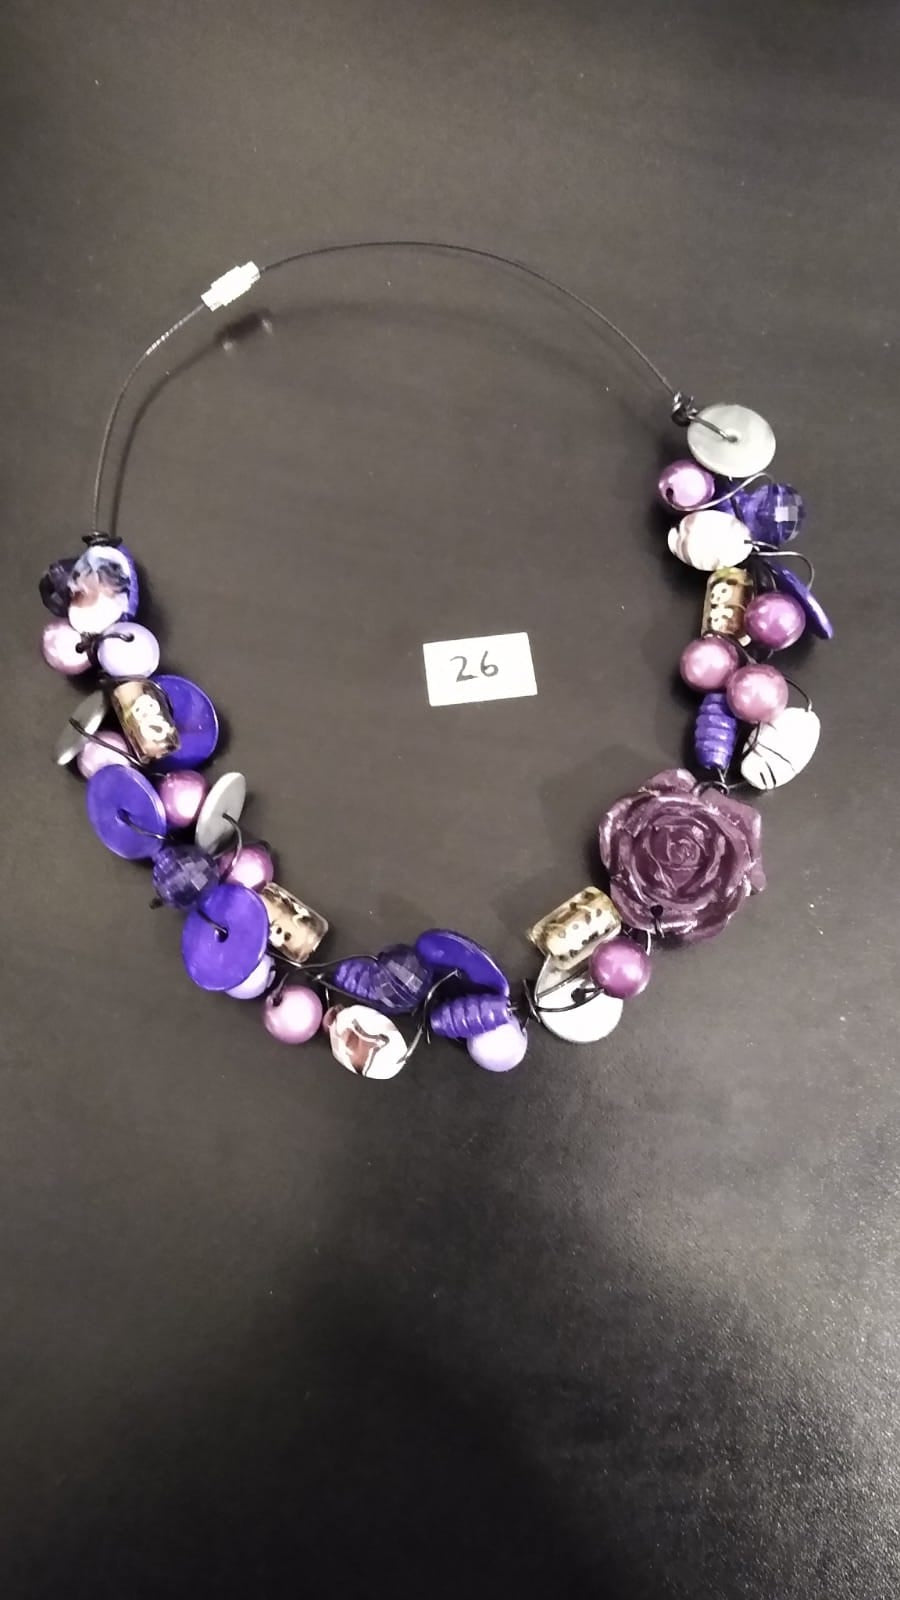 Necklace - Collection of Different Shape Beads, Rose bead on a Short Wire